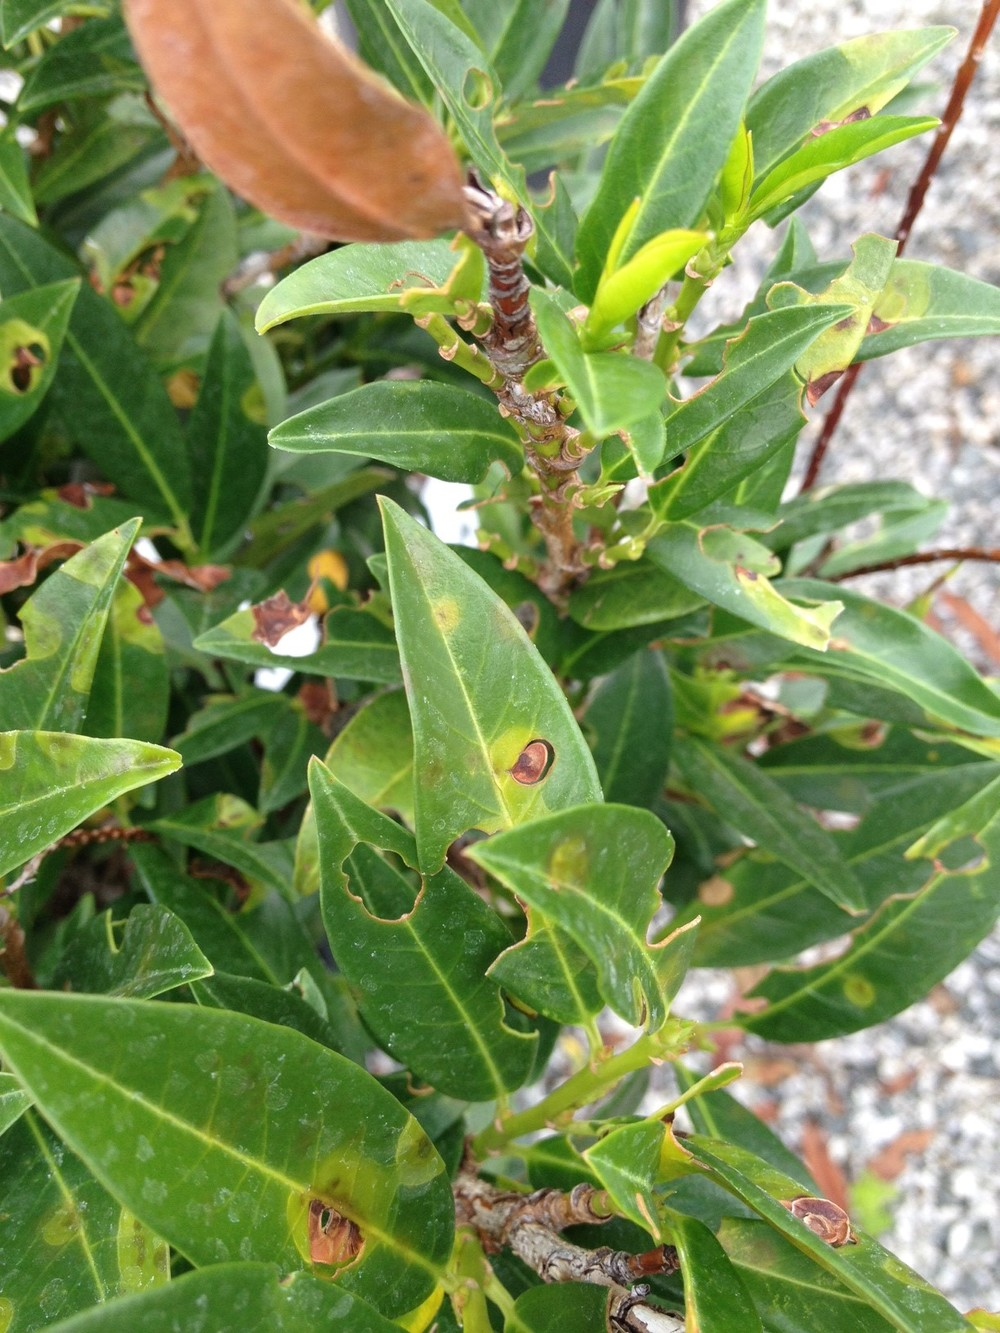 Here the disease is active, showing the brown leaf spots as they separate and fall out.